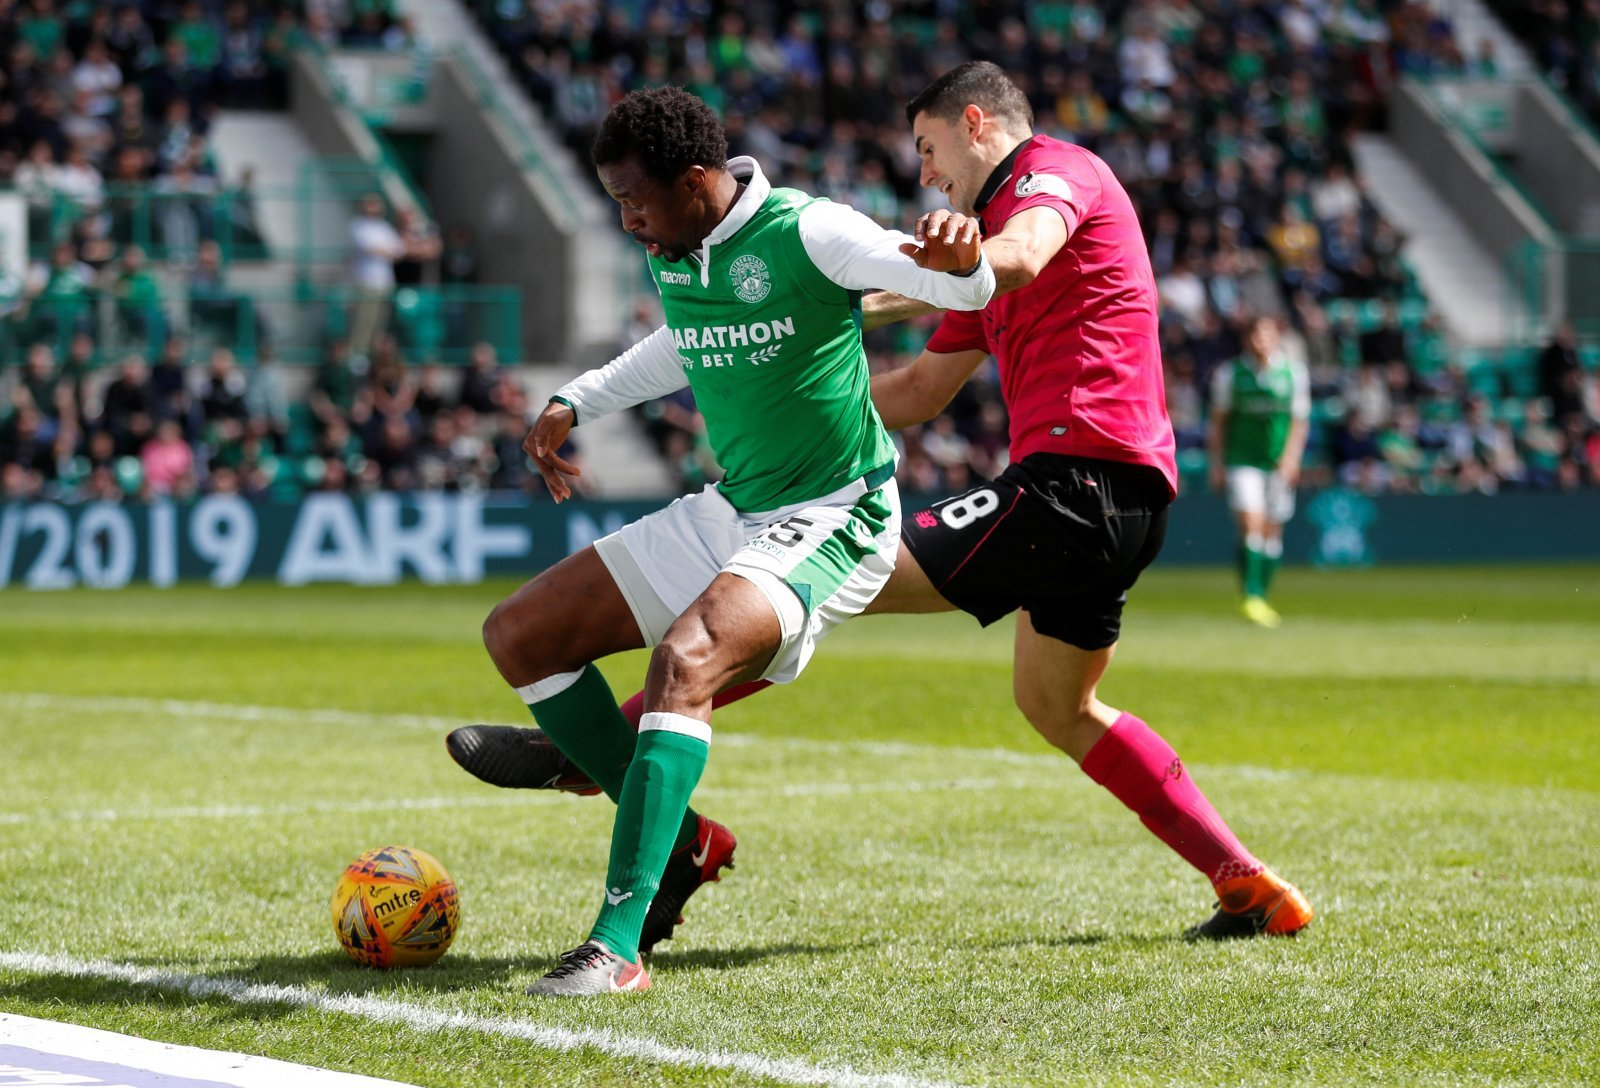 Introducing: Efe Ambrose to save Plymouth's League One status